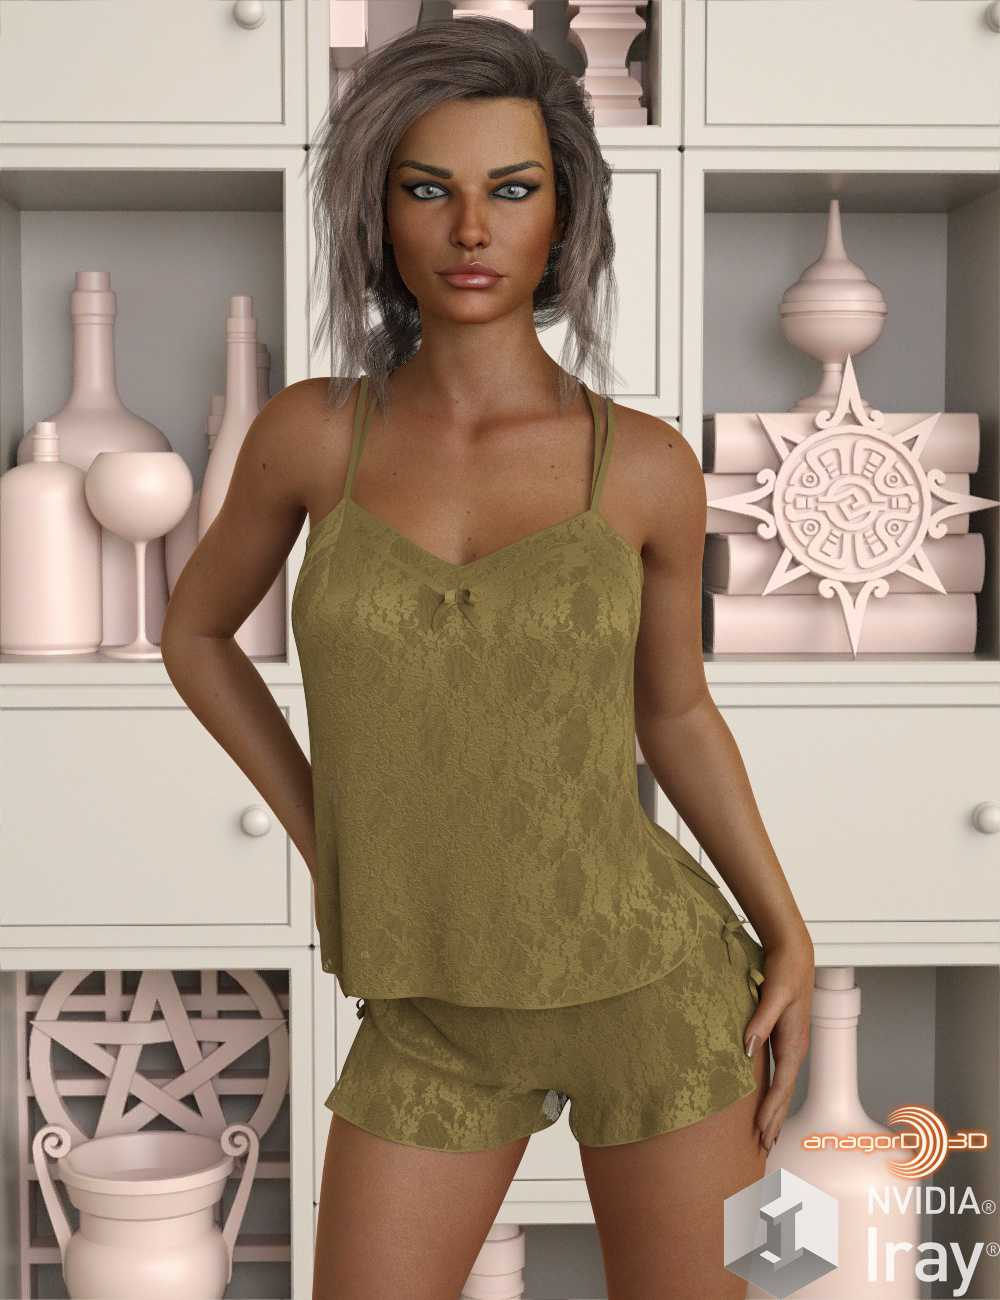 VERSUS – dForce Sexy Silk PJs With Lace for Genesis 8 Female